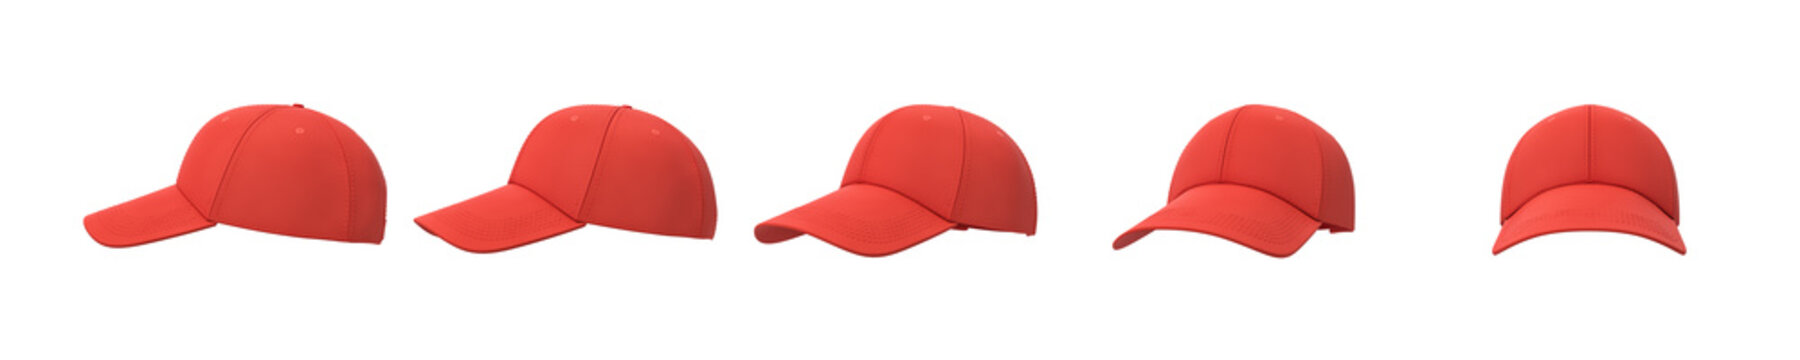 3d rendering of five red baseball caps shown in one line from side to front view on a white background.